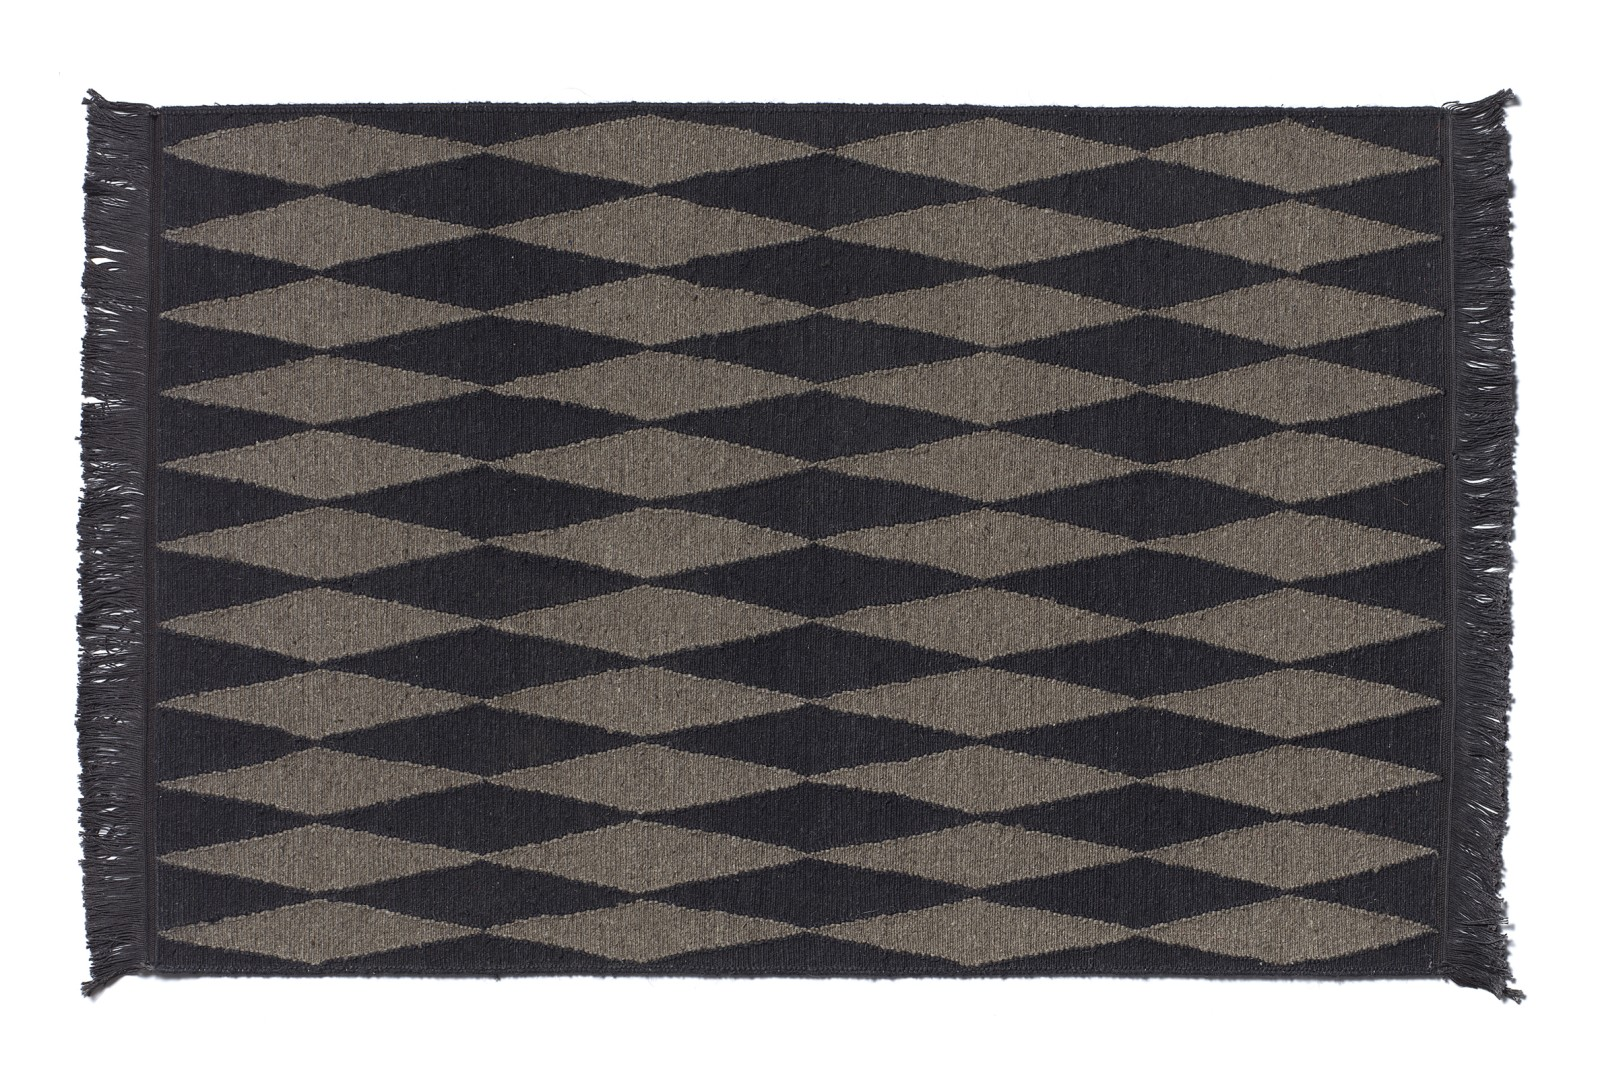 CP02 Neyriz Carpet Black and Quartz Grey, 120x80 cm